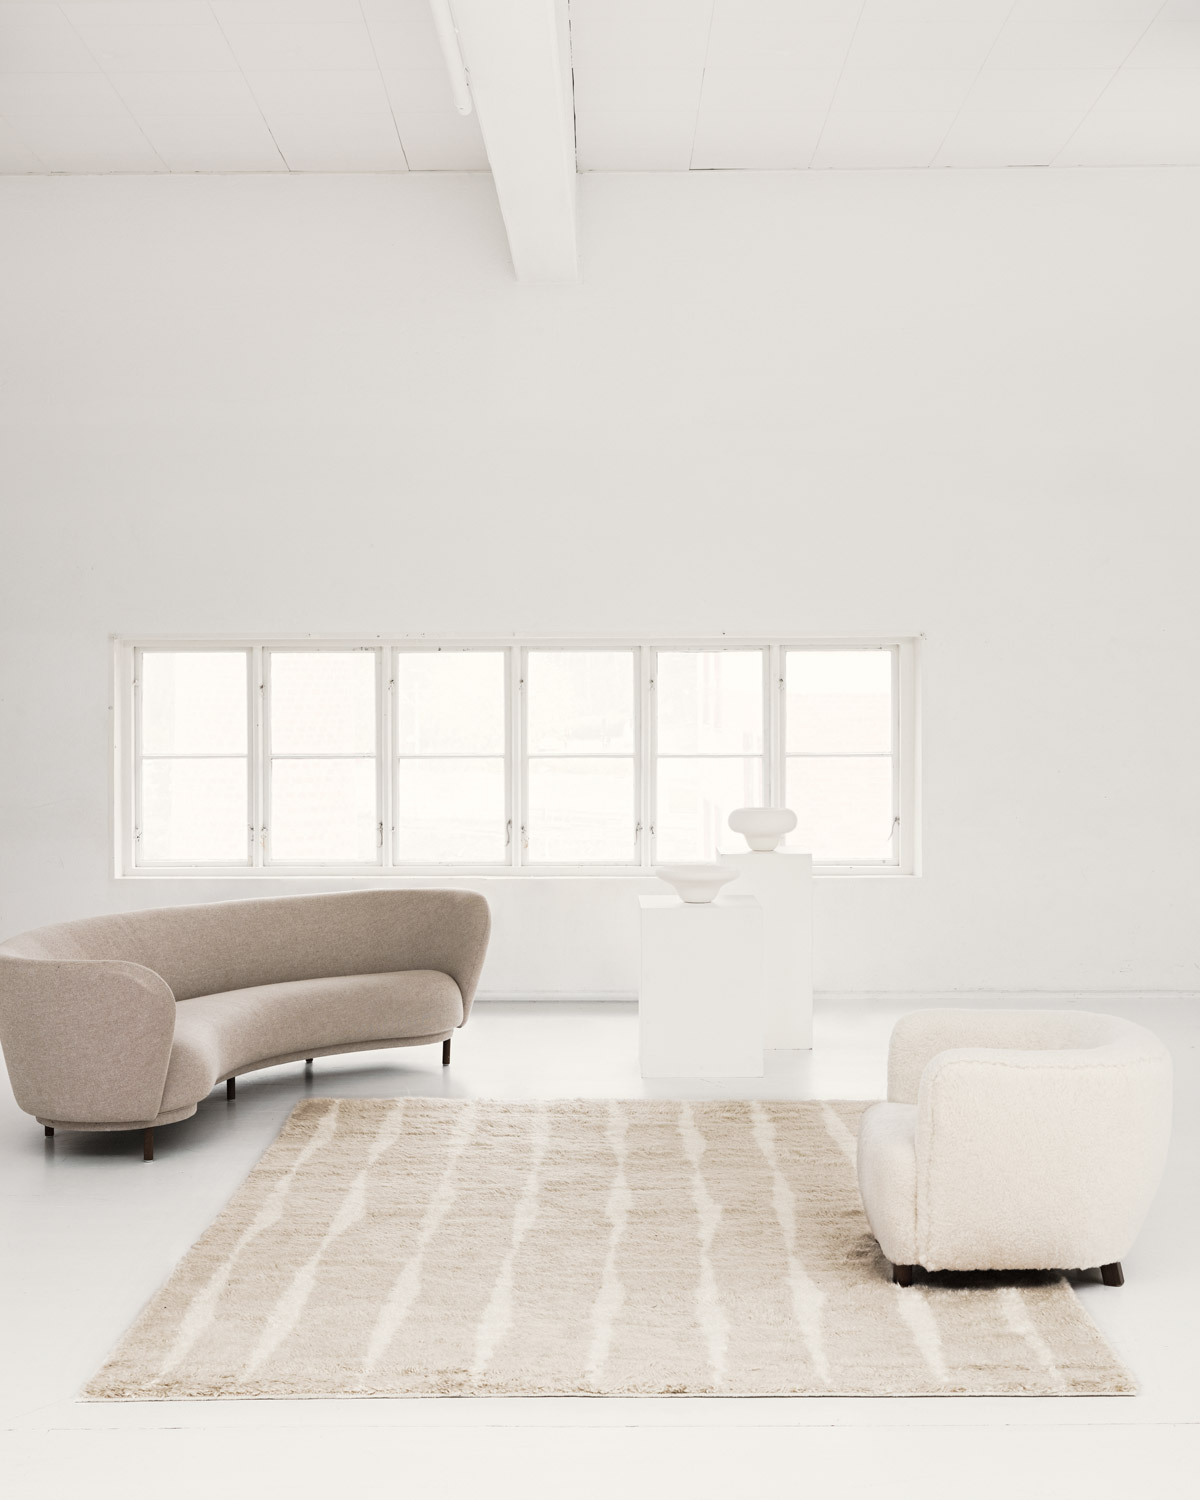 The Fjord rug in Pale Sand in a white, contemporary space together with a curved, beige sofa as well as a sheep fur armchair.